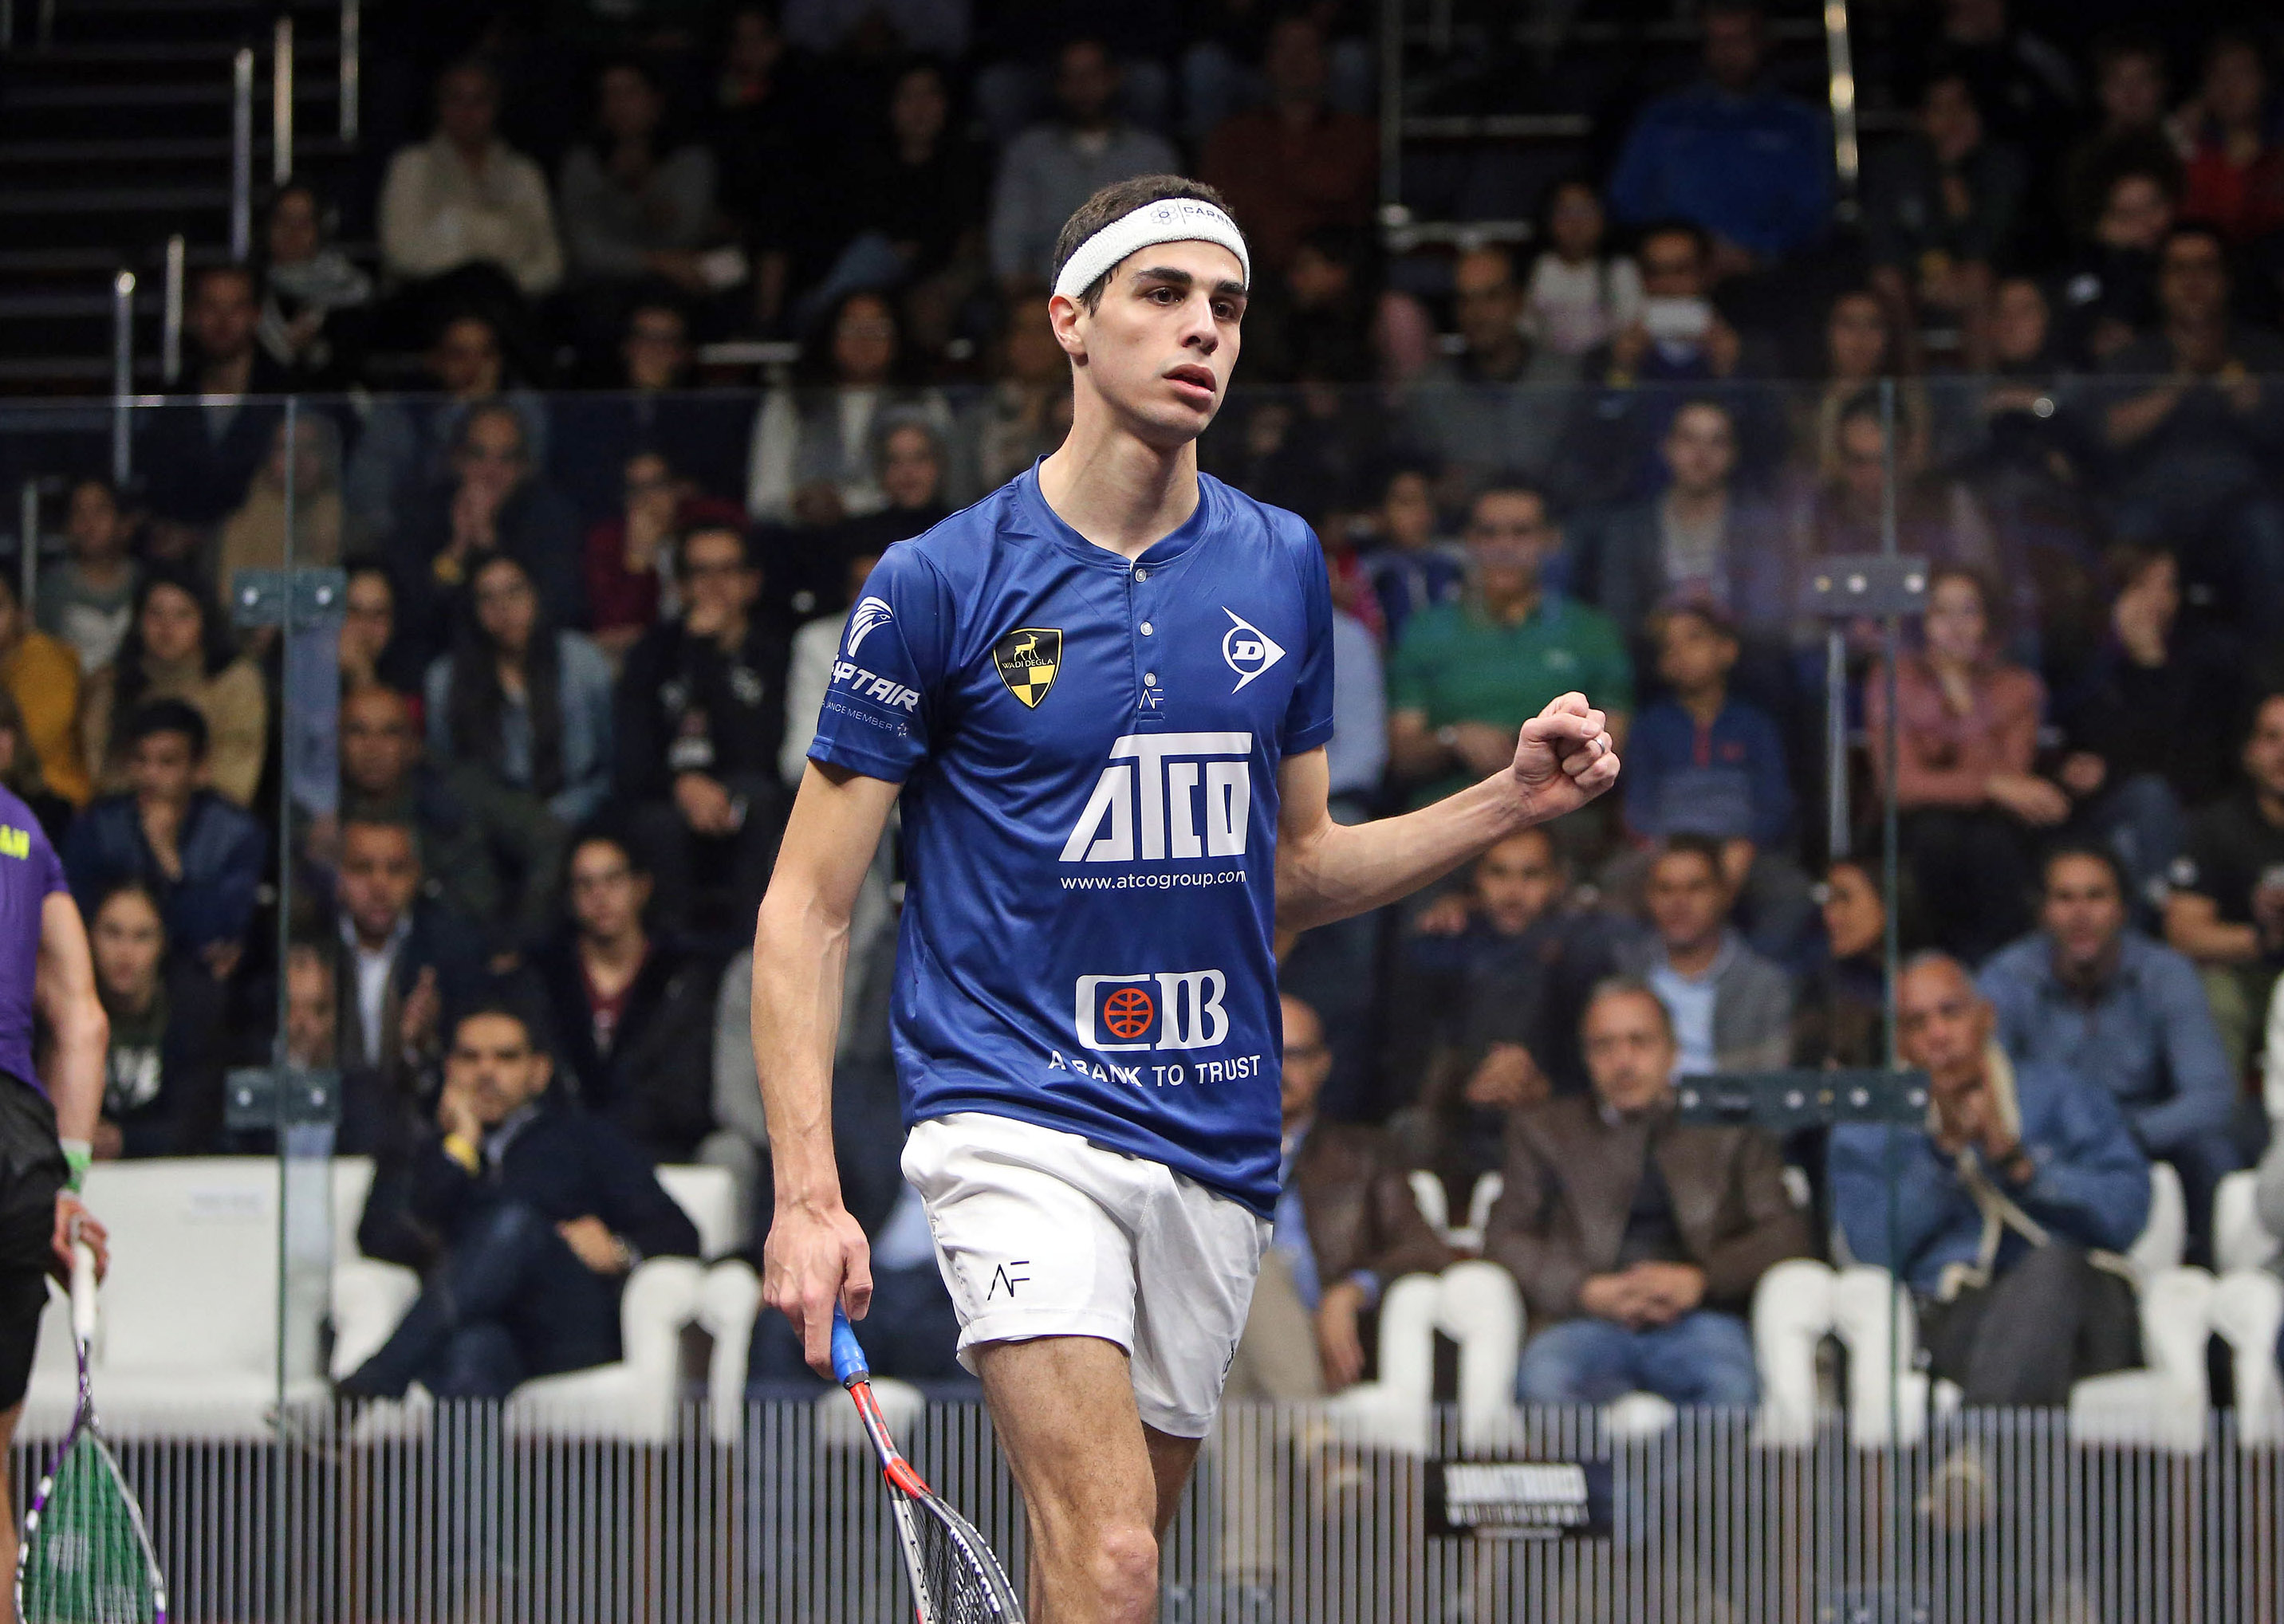 Egypts World No 2 Ali Farag And World No 9 Karim Abdel Gawad Will Meet In The Final Of The Cib Black Ball Squash Open Psa Platinum Event